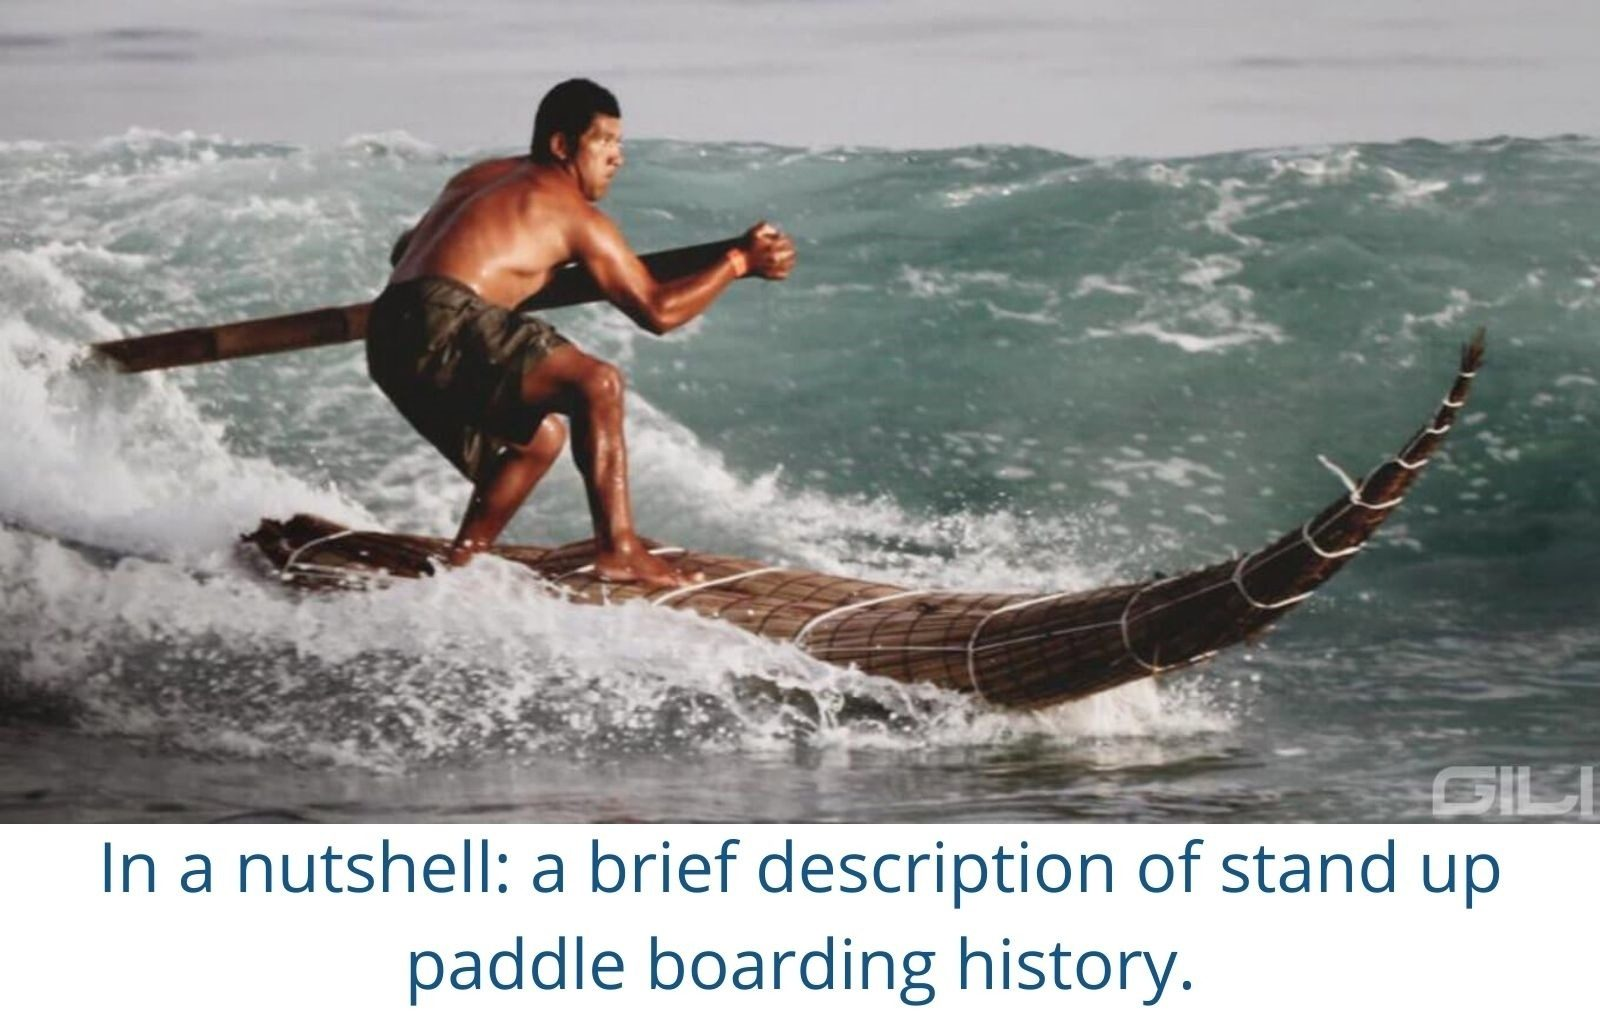 In a nutshell: a brief description of stand up paddle boarding history.